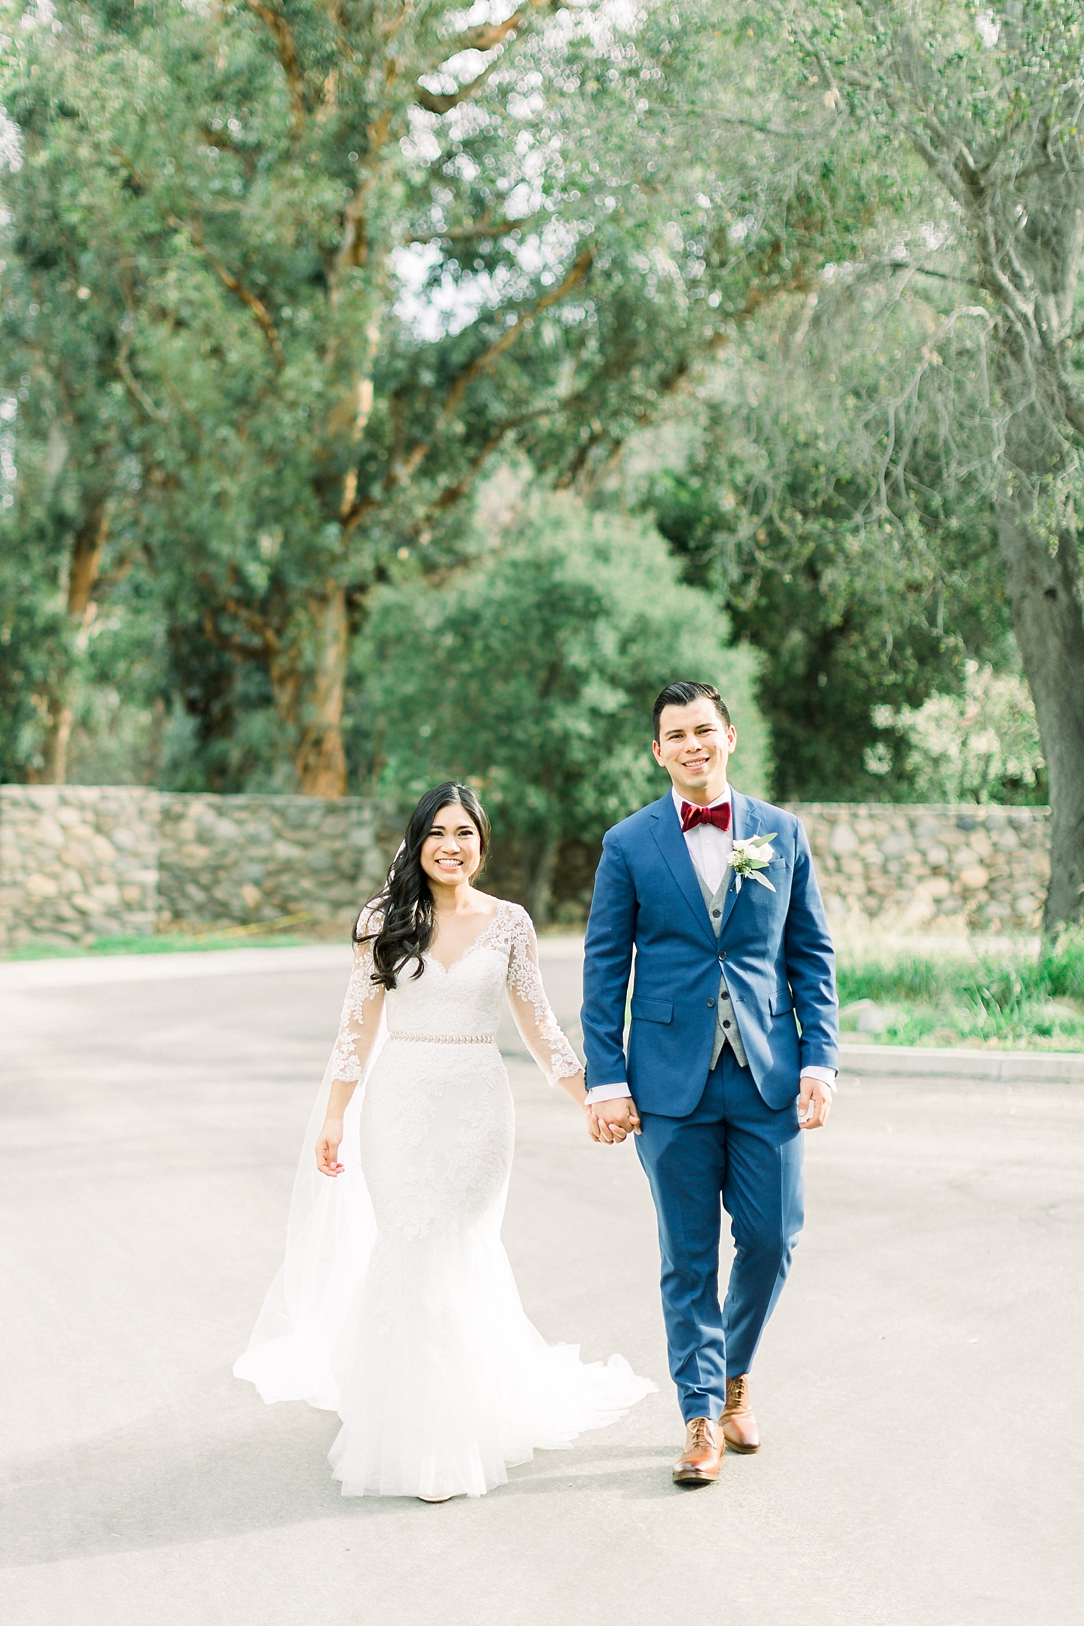 A Vintage Inspired Wedding At Santiago Oaks Regional Park And The Vintage Rose By Natural Light Photographer Madison Ellis Photography. (29)